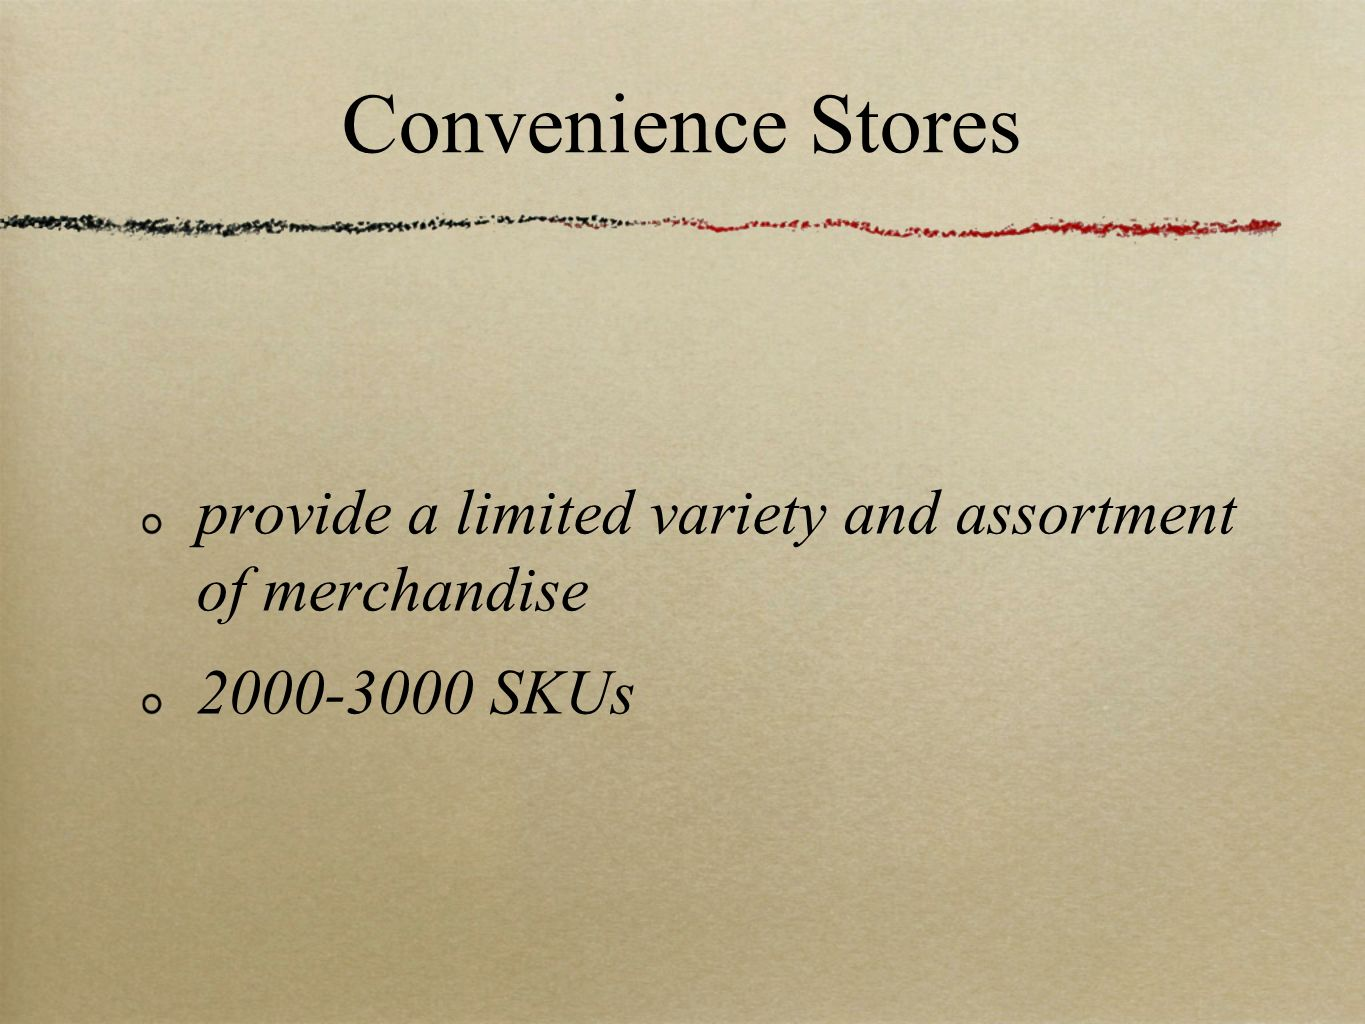 Convenience Stores provide a limited variety and assortment of merchandise SKUs